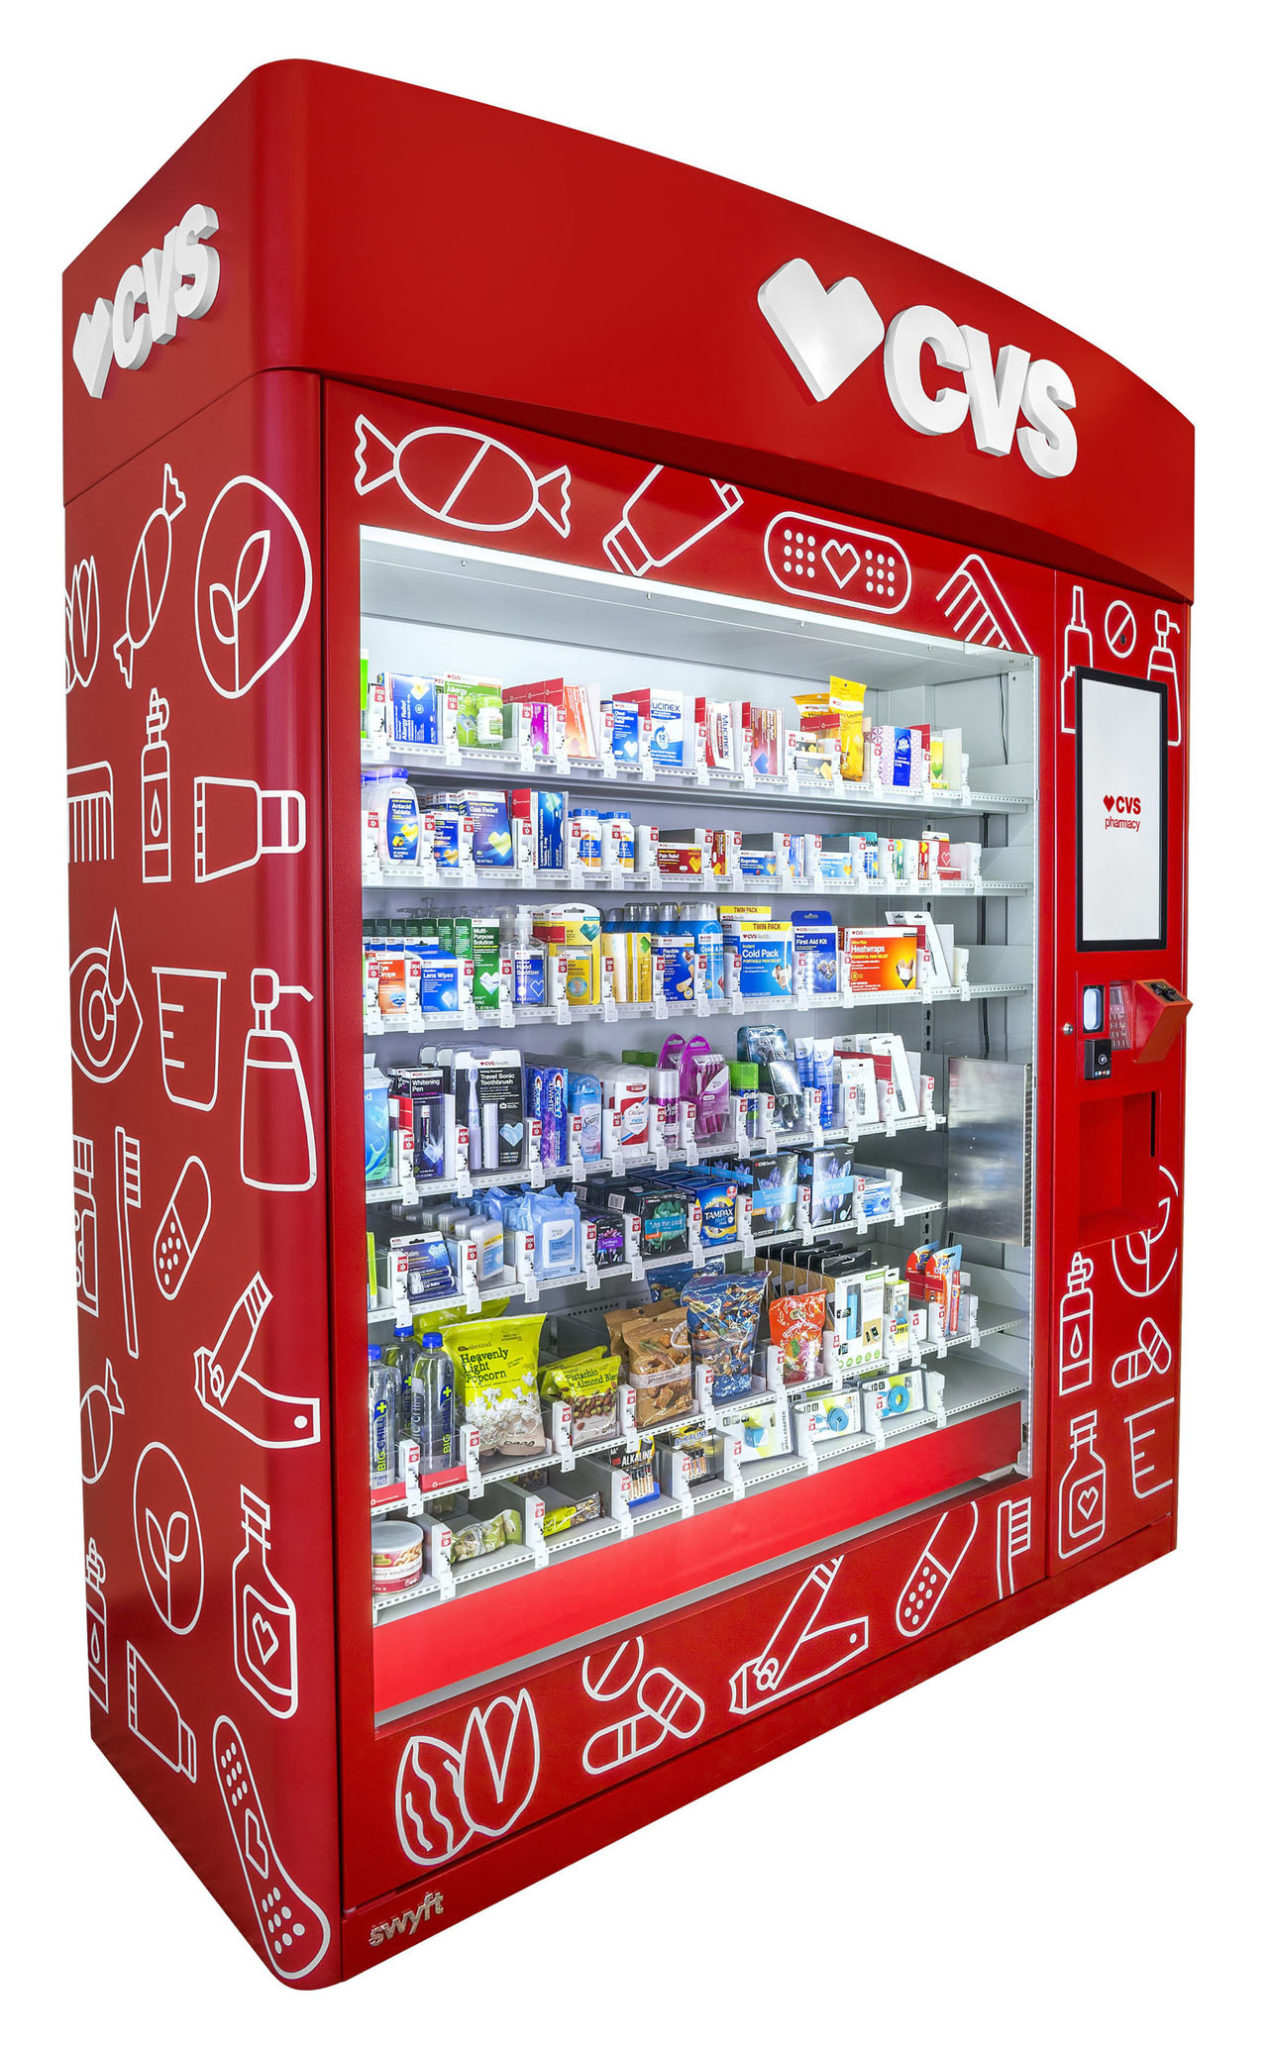 Cvs Introduces Health Product Vending Machines Providence